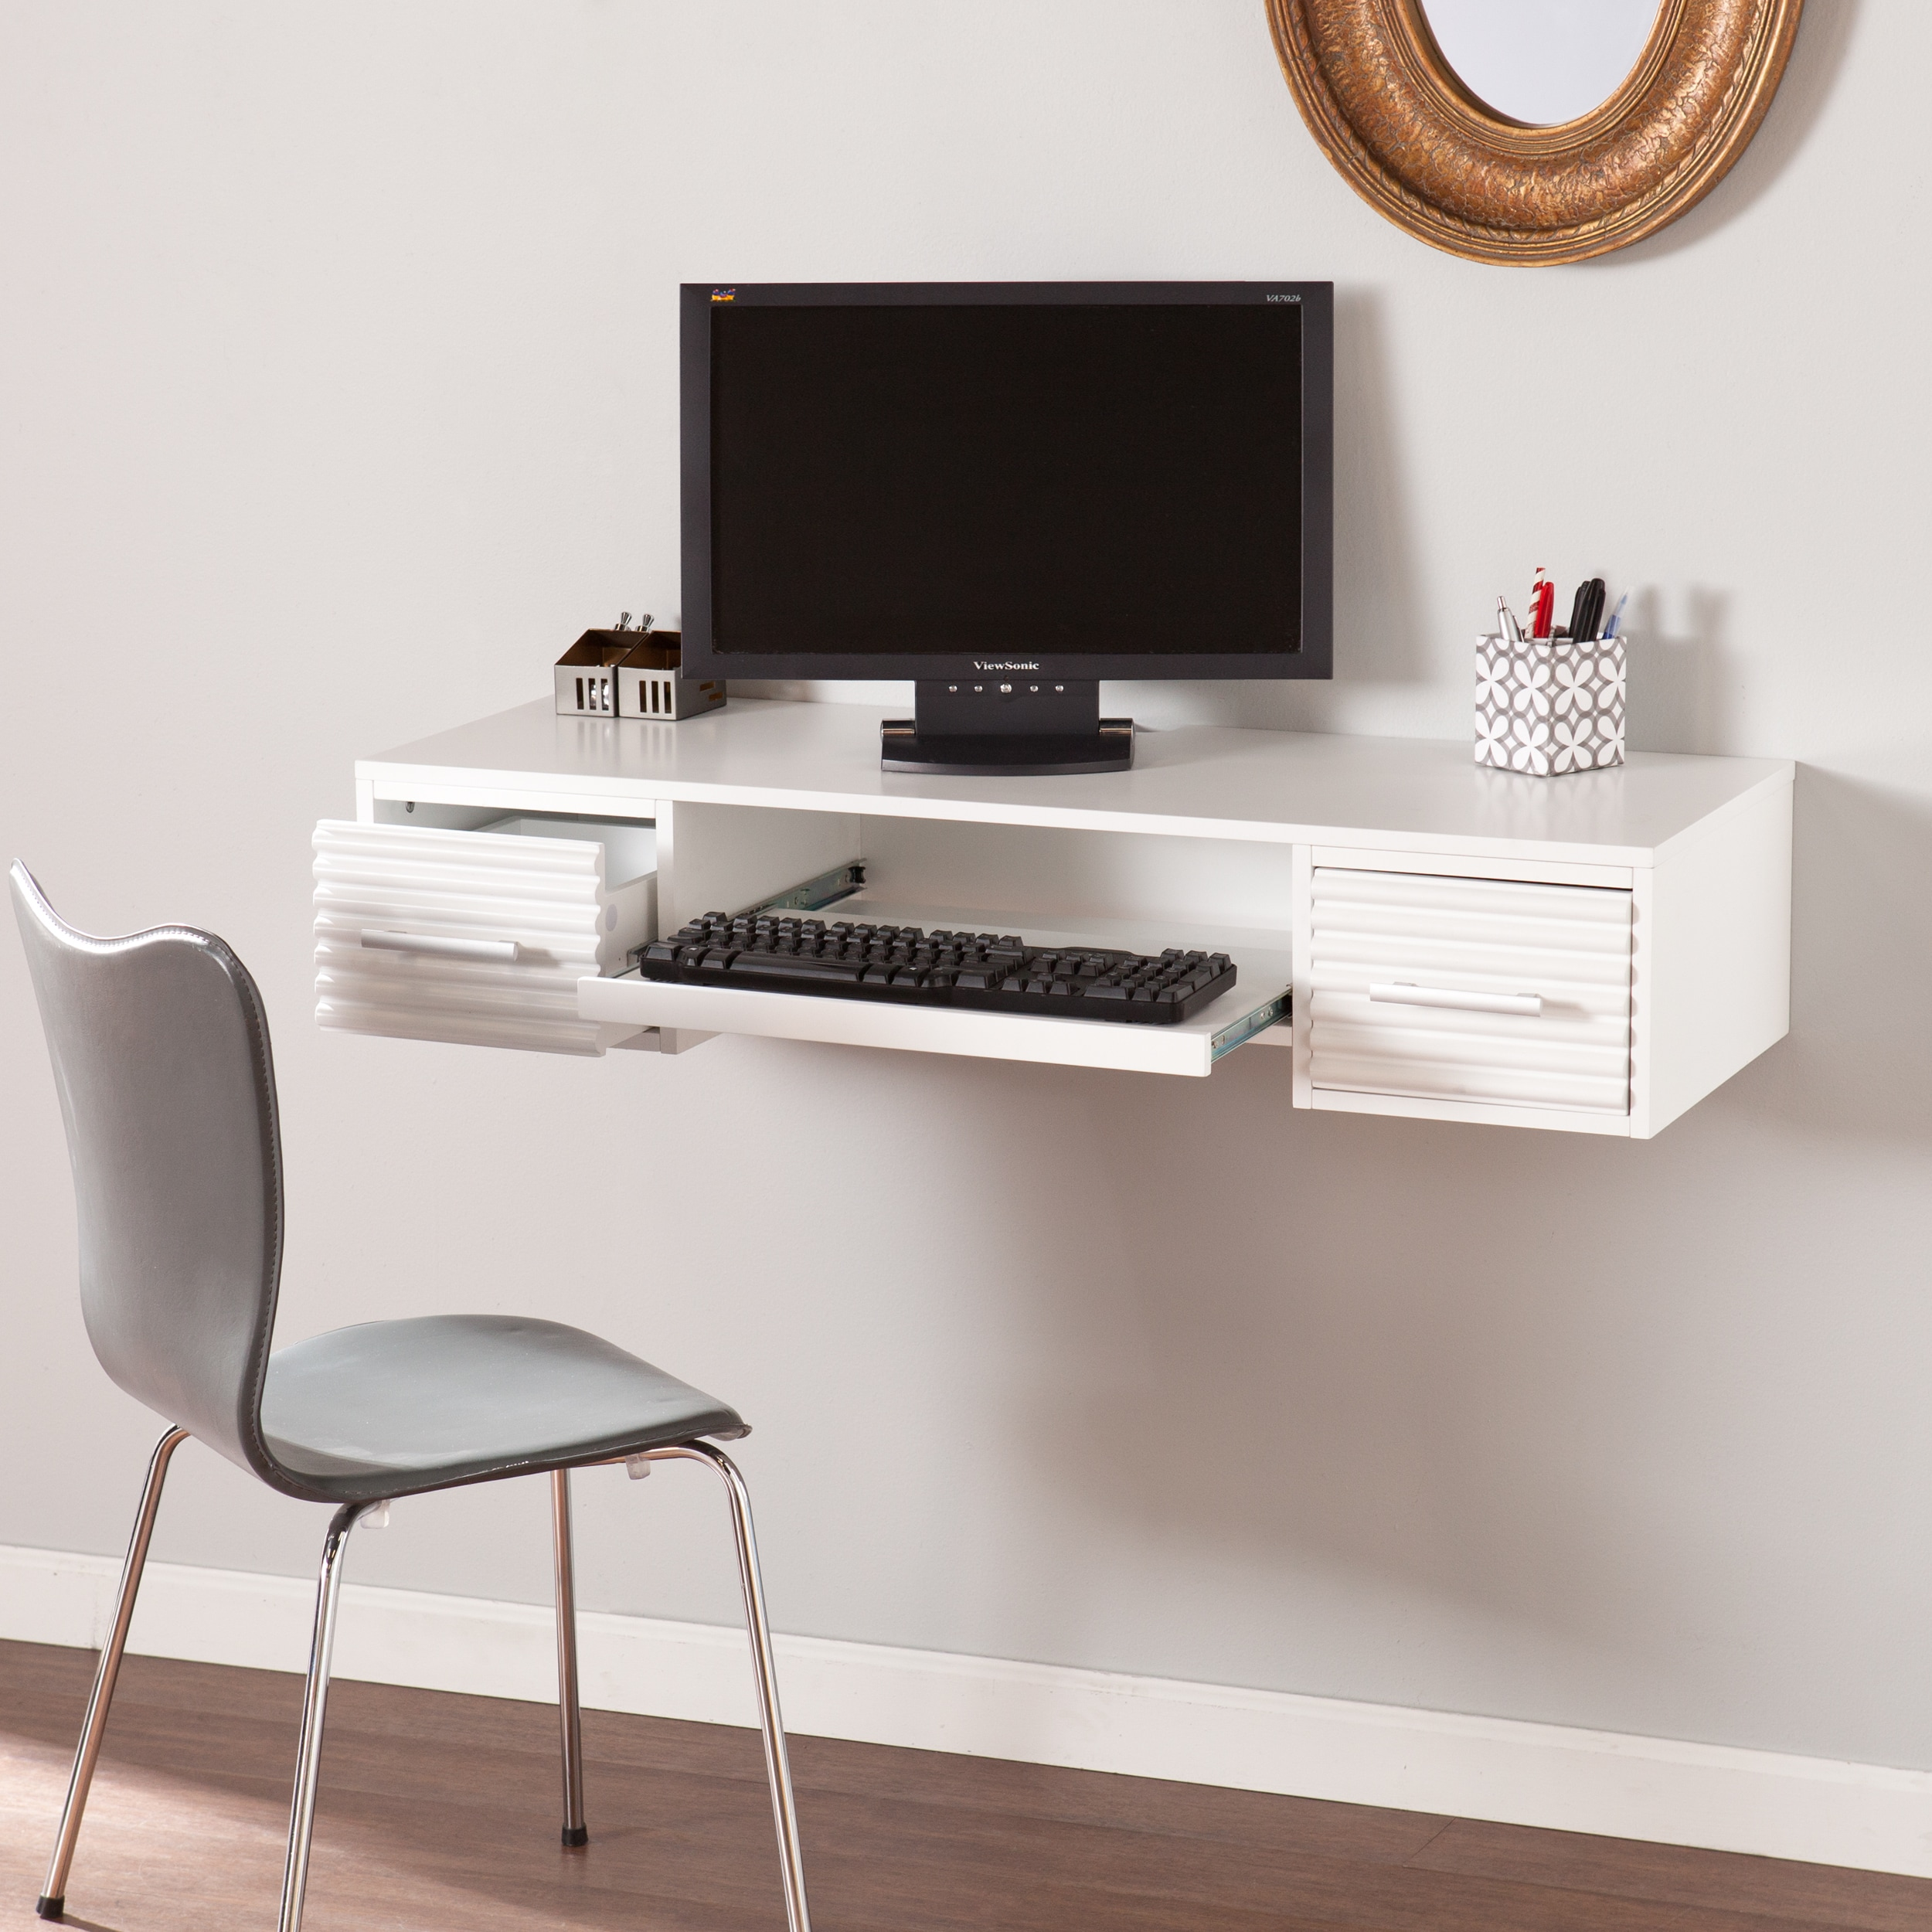 wall altra jace mount walmart espresso desk mounted